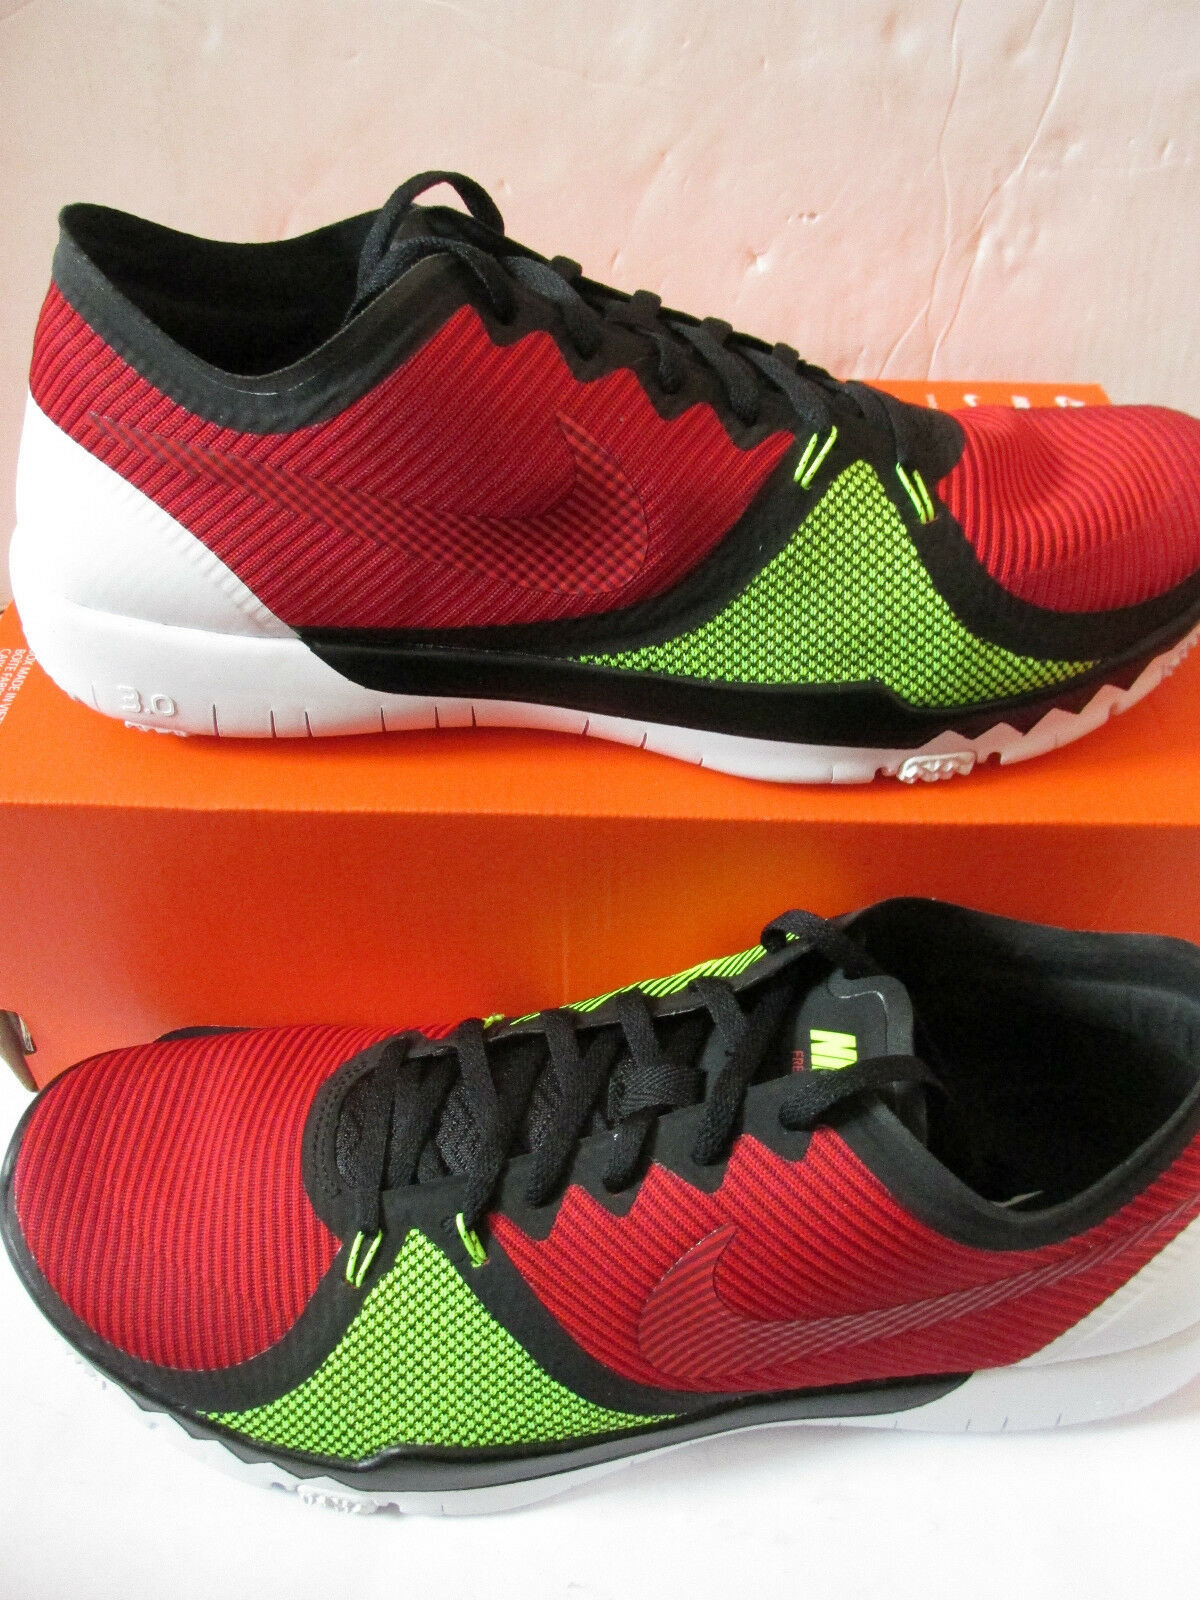 Nike free trainer 3.0 V4 mens running trainers 749361 066 sneakers shoes